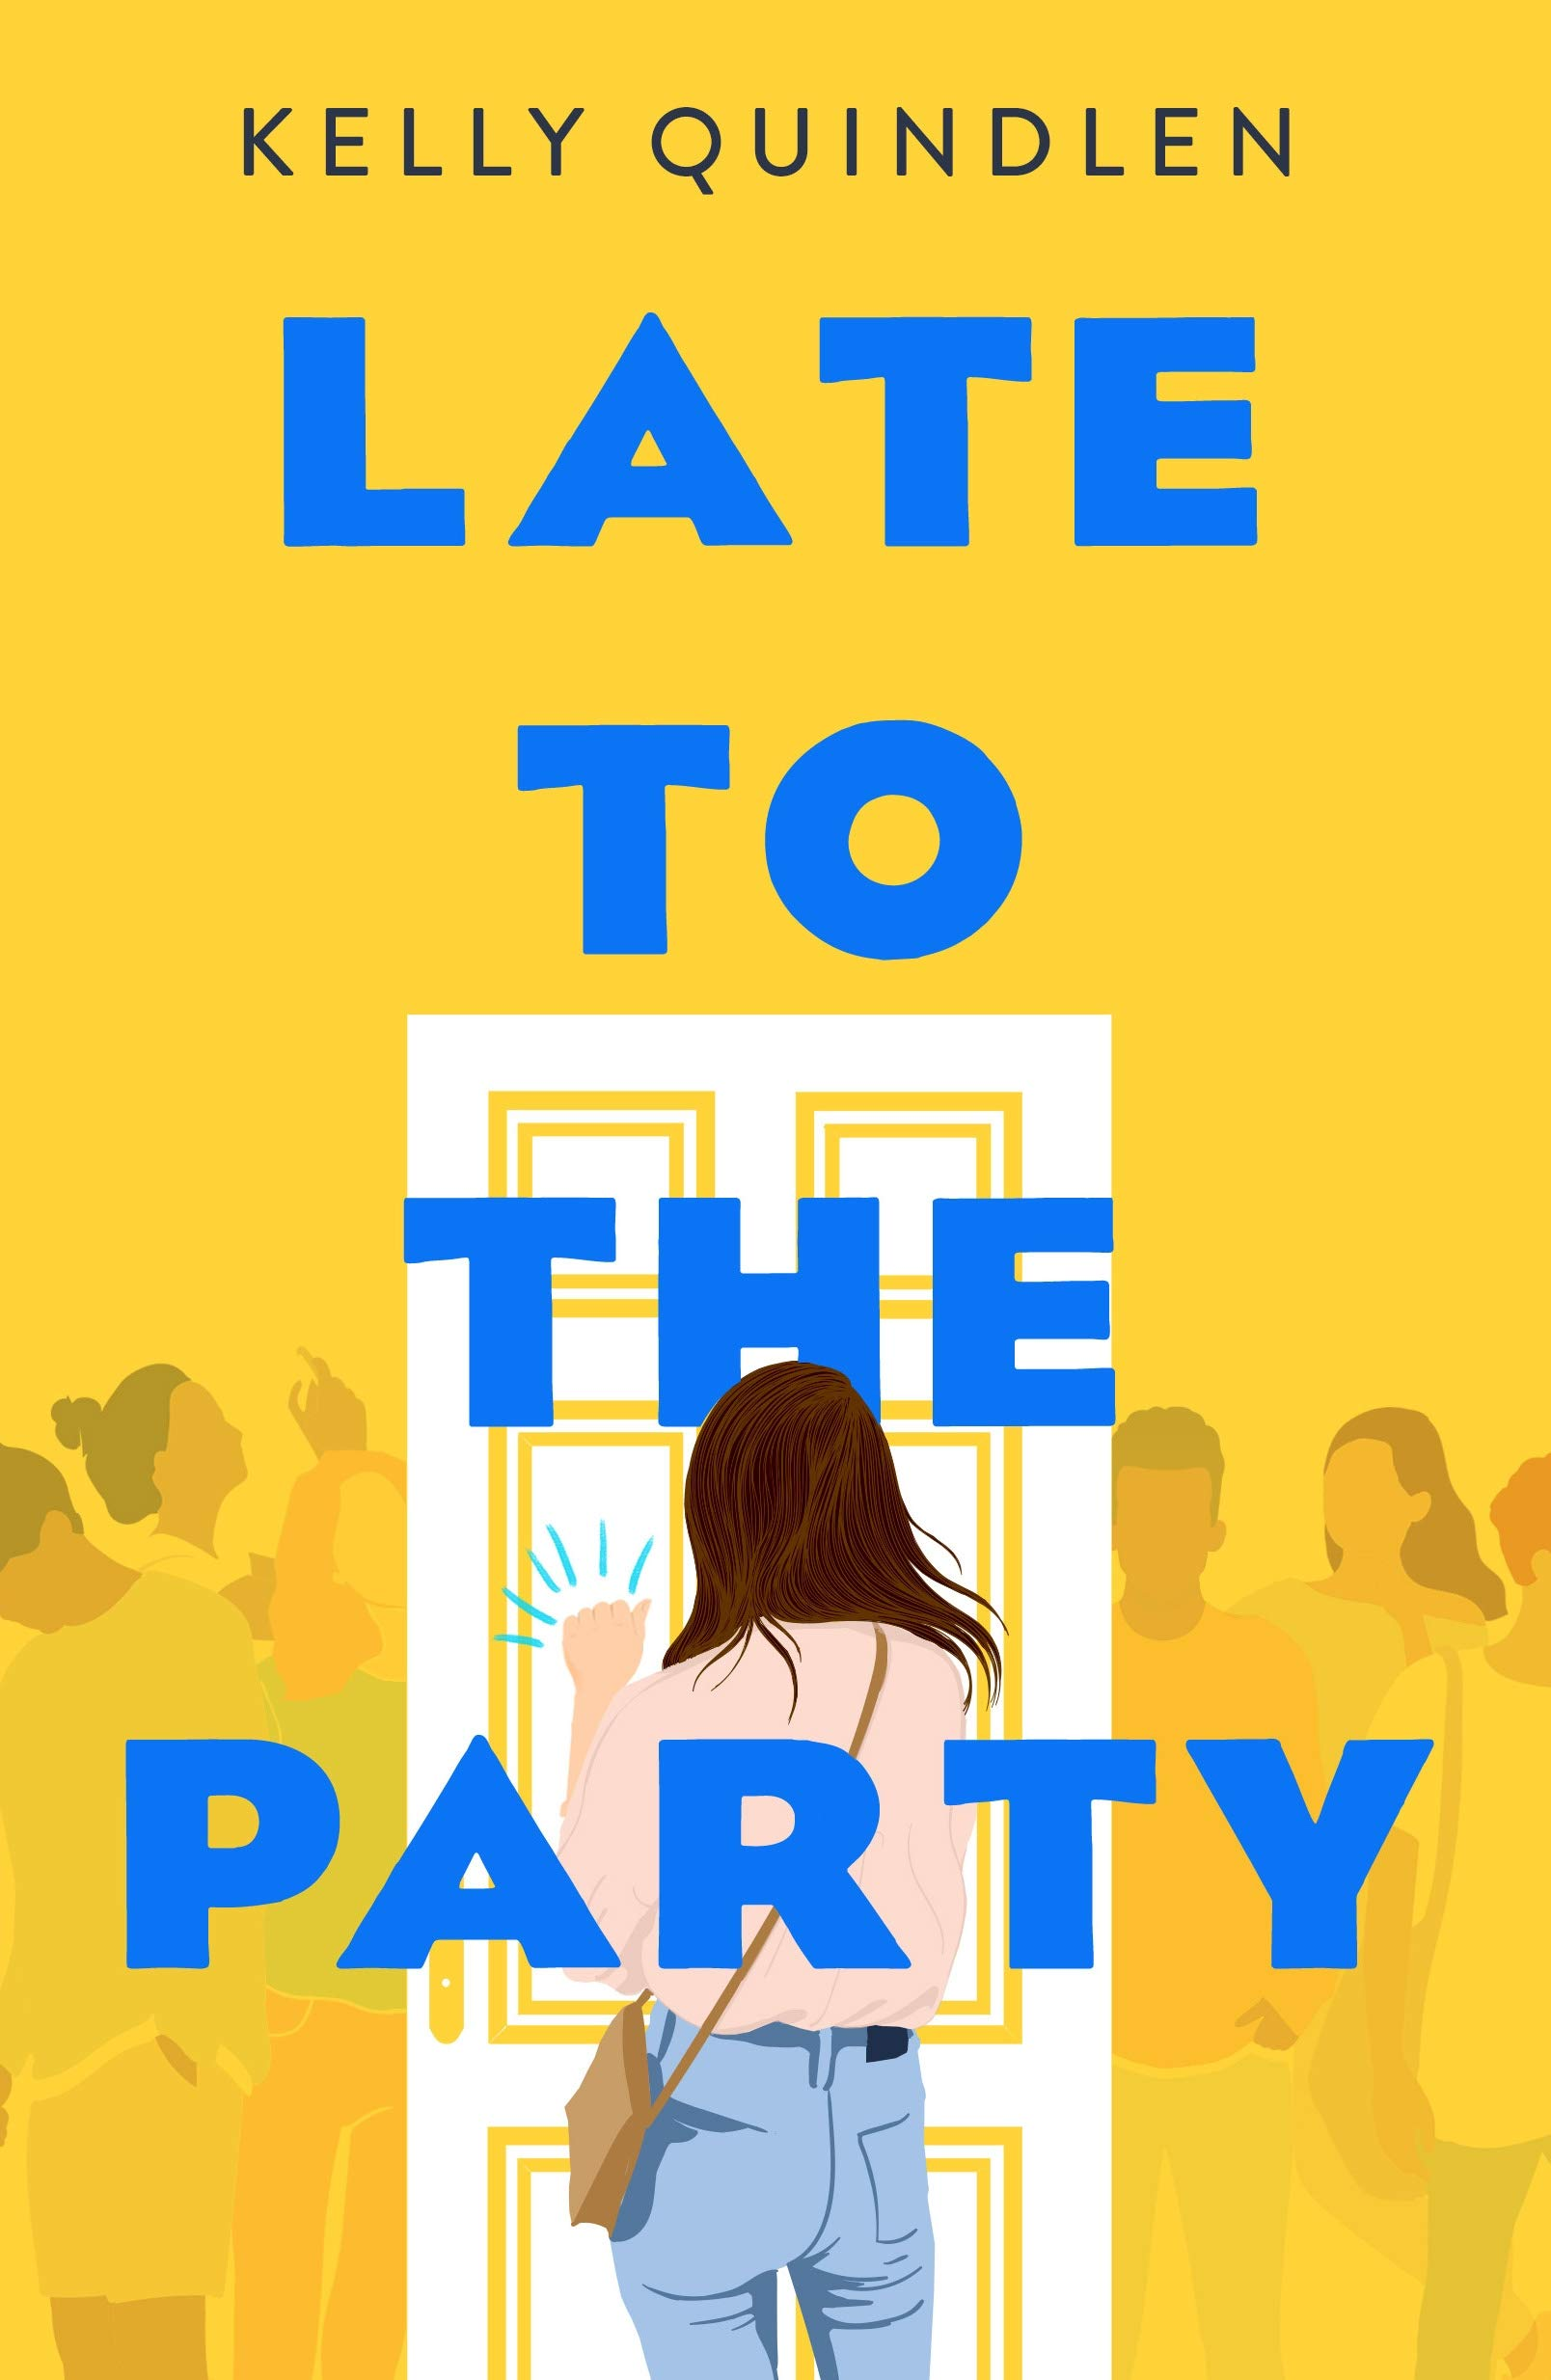 Amazon.com: Late to the Party (9781250209139): Quindlen, Kelly: Books